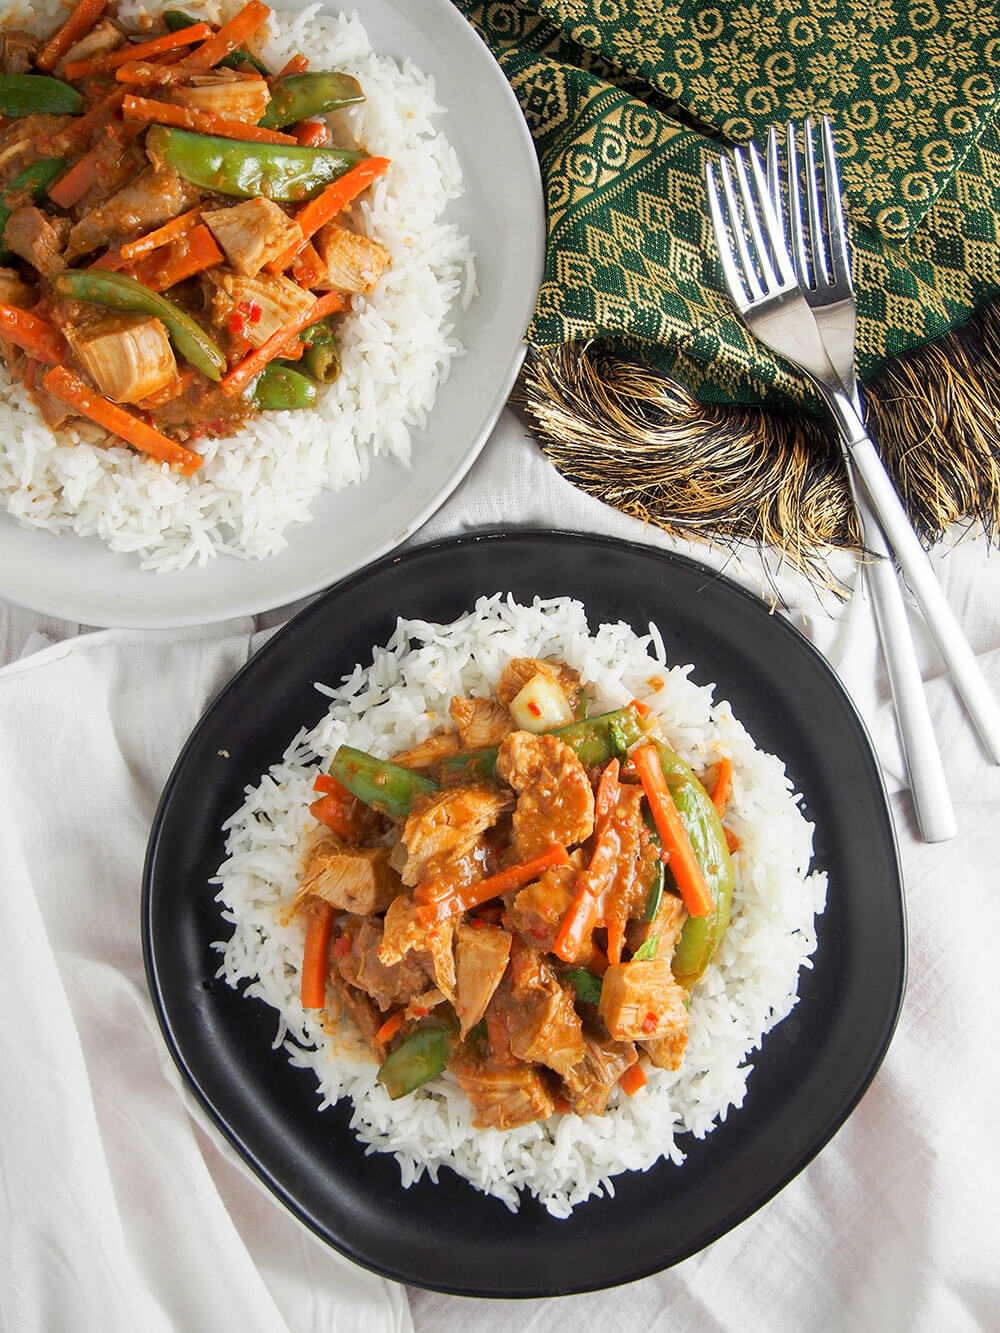 Thai red curry using leftovers showing two plates from overhead